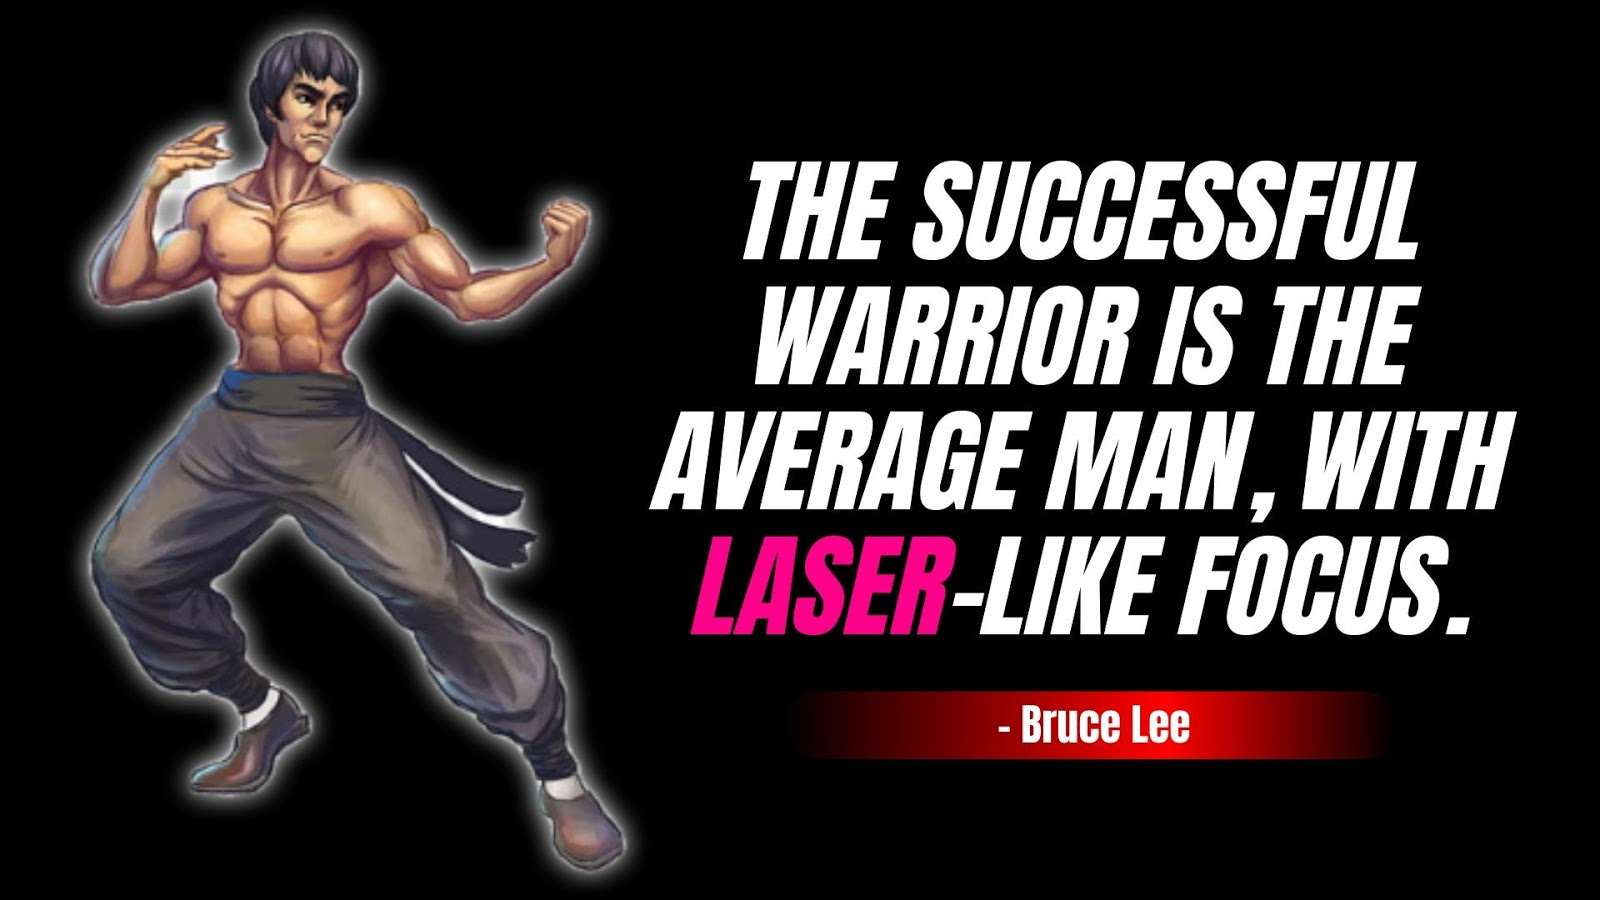 Bruce Lee Quotes about success